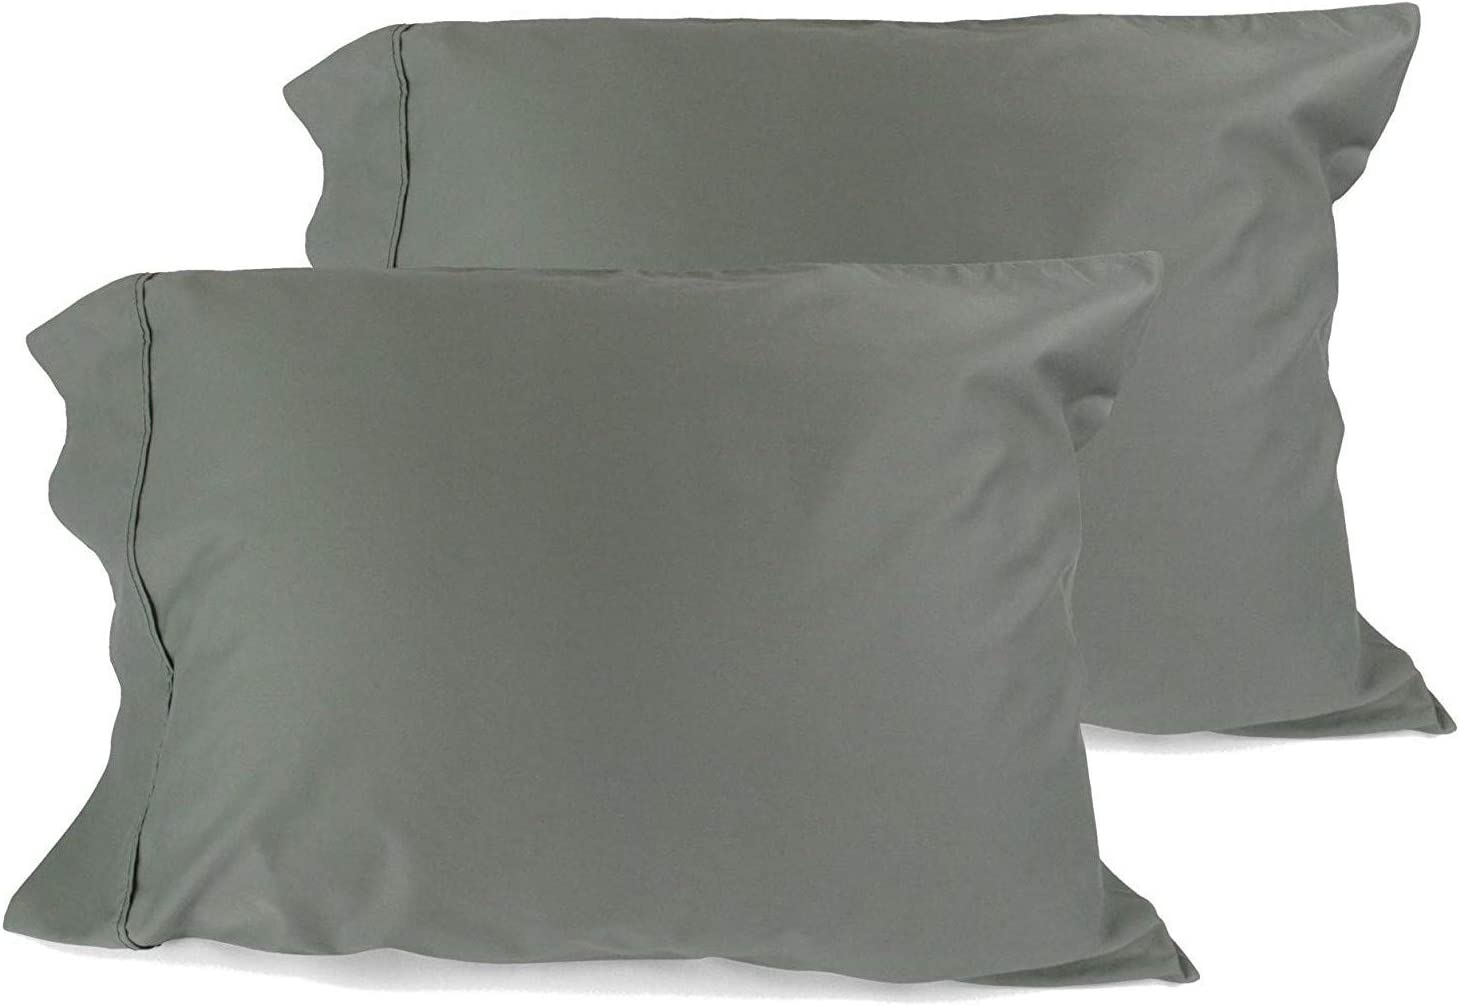 American Pillowcase 100/% Cotton High Thread Count fits 20x36 Pillow King 21x40 - Lilac Luxury Set of Pillow Cases Z-Style Hem Stitch